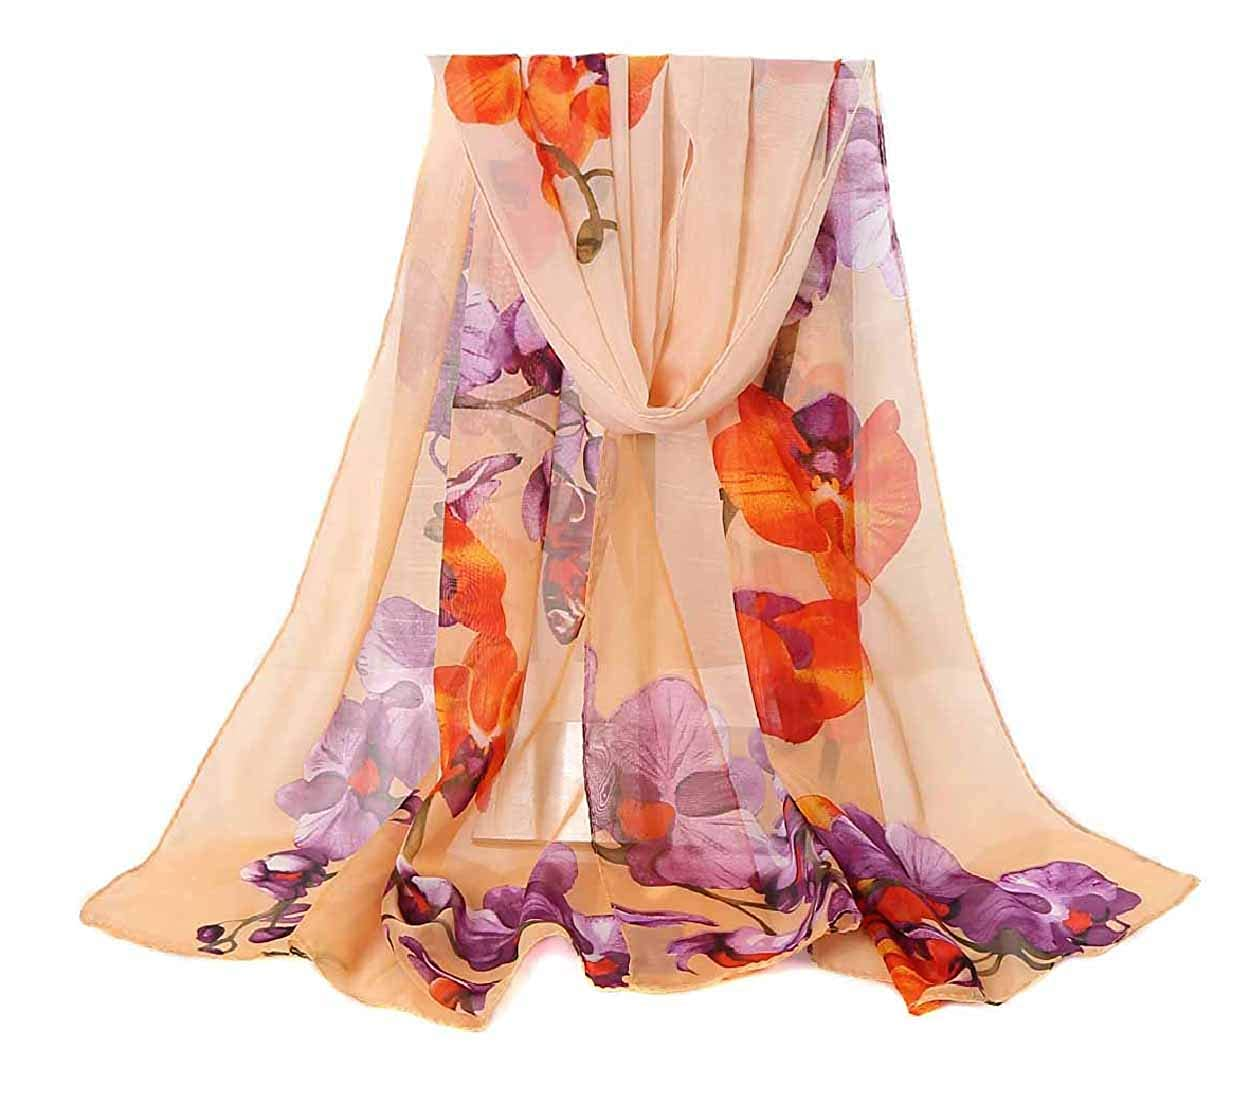 Womens Chiffon Scarf Lightweight Fashion Sheer Scarfs Shawl Wrap Scarves